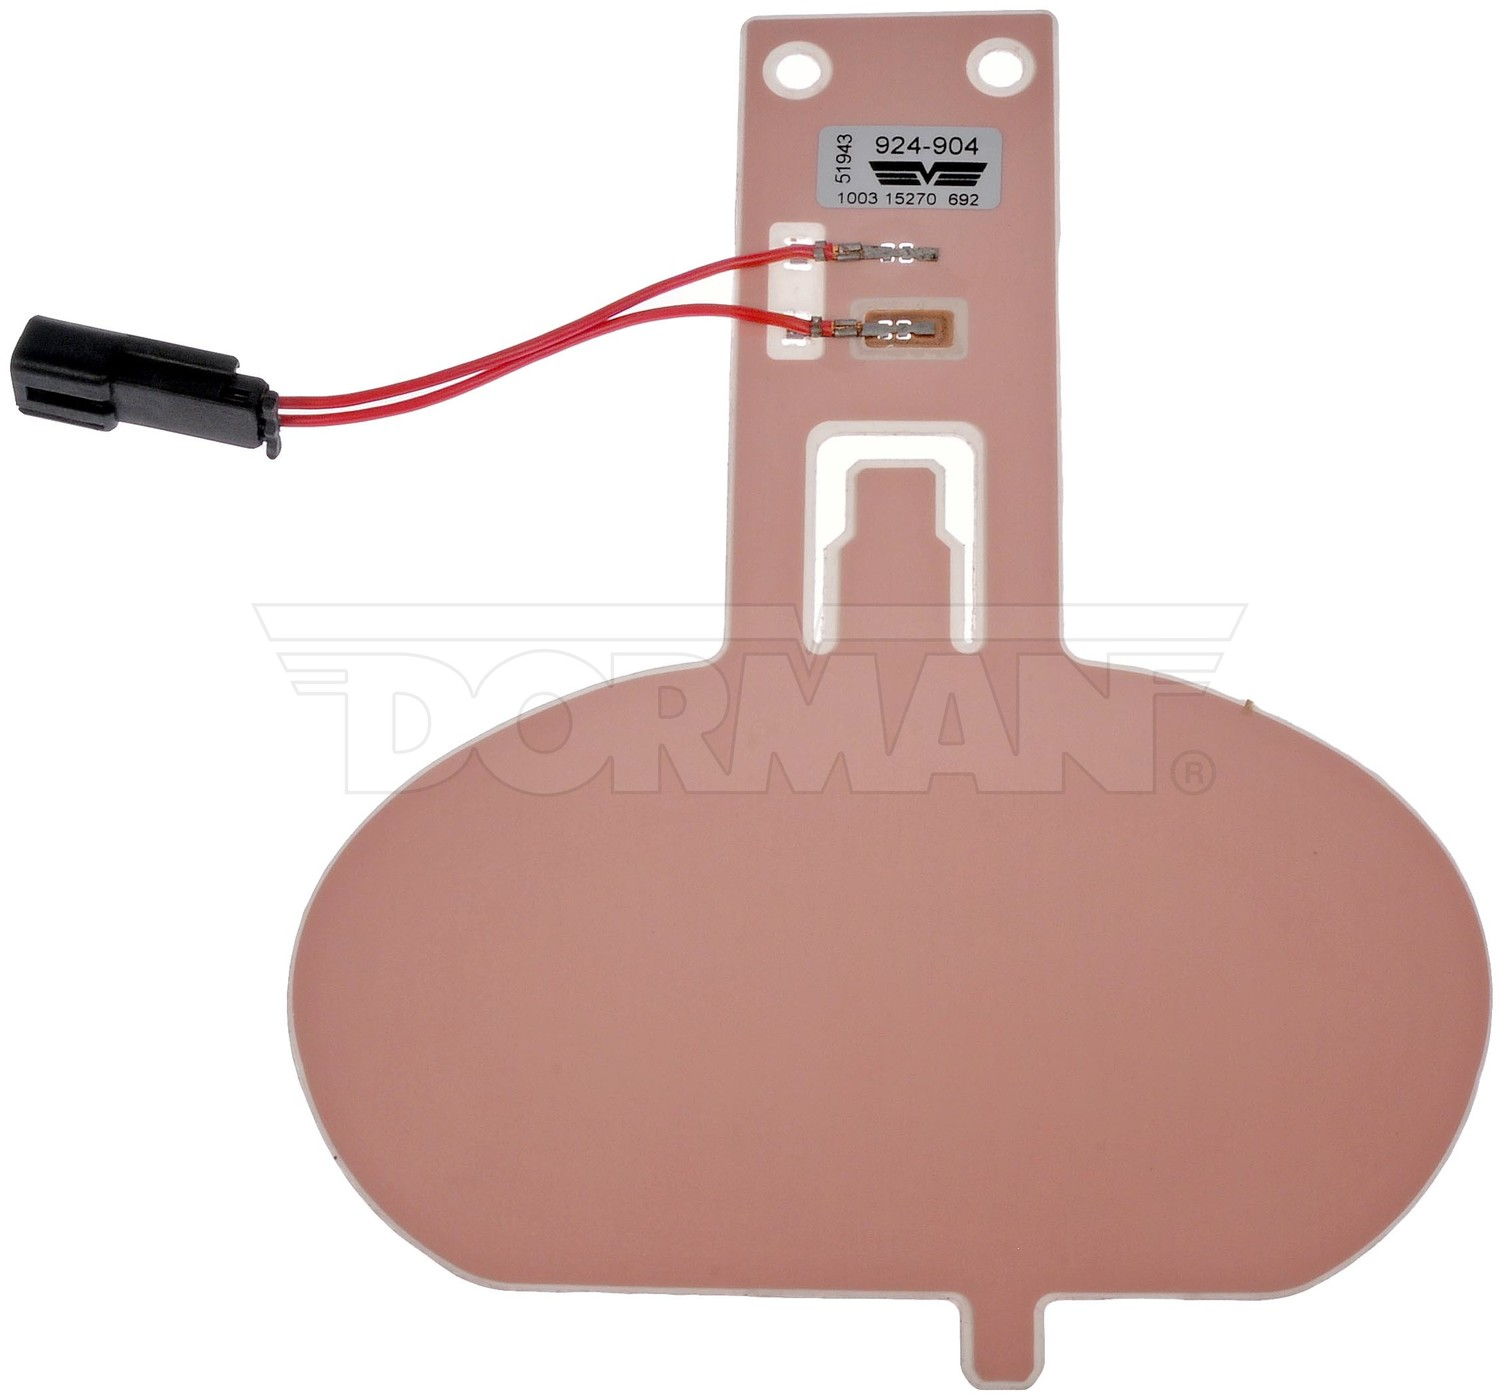 DORMAN OE SOLUTIONS - Horn Contact - DRE 924-904